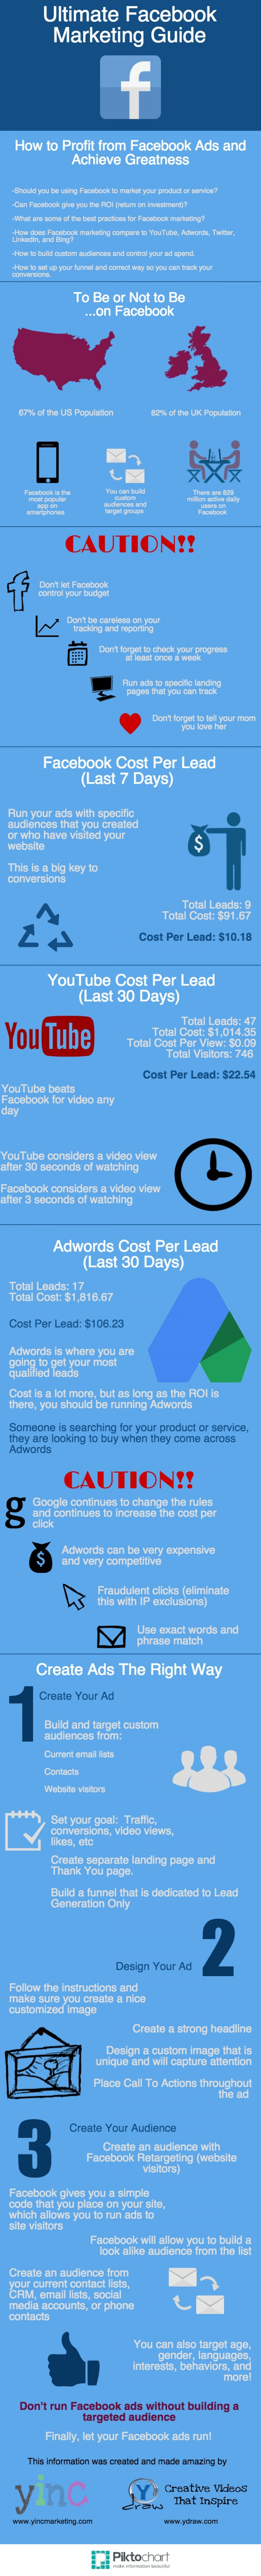 Ultimate Facebook Marketing Guide Infographic Infographic